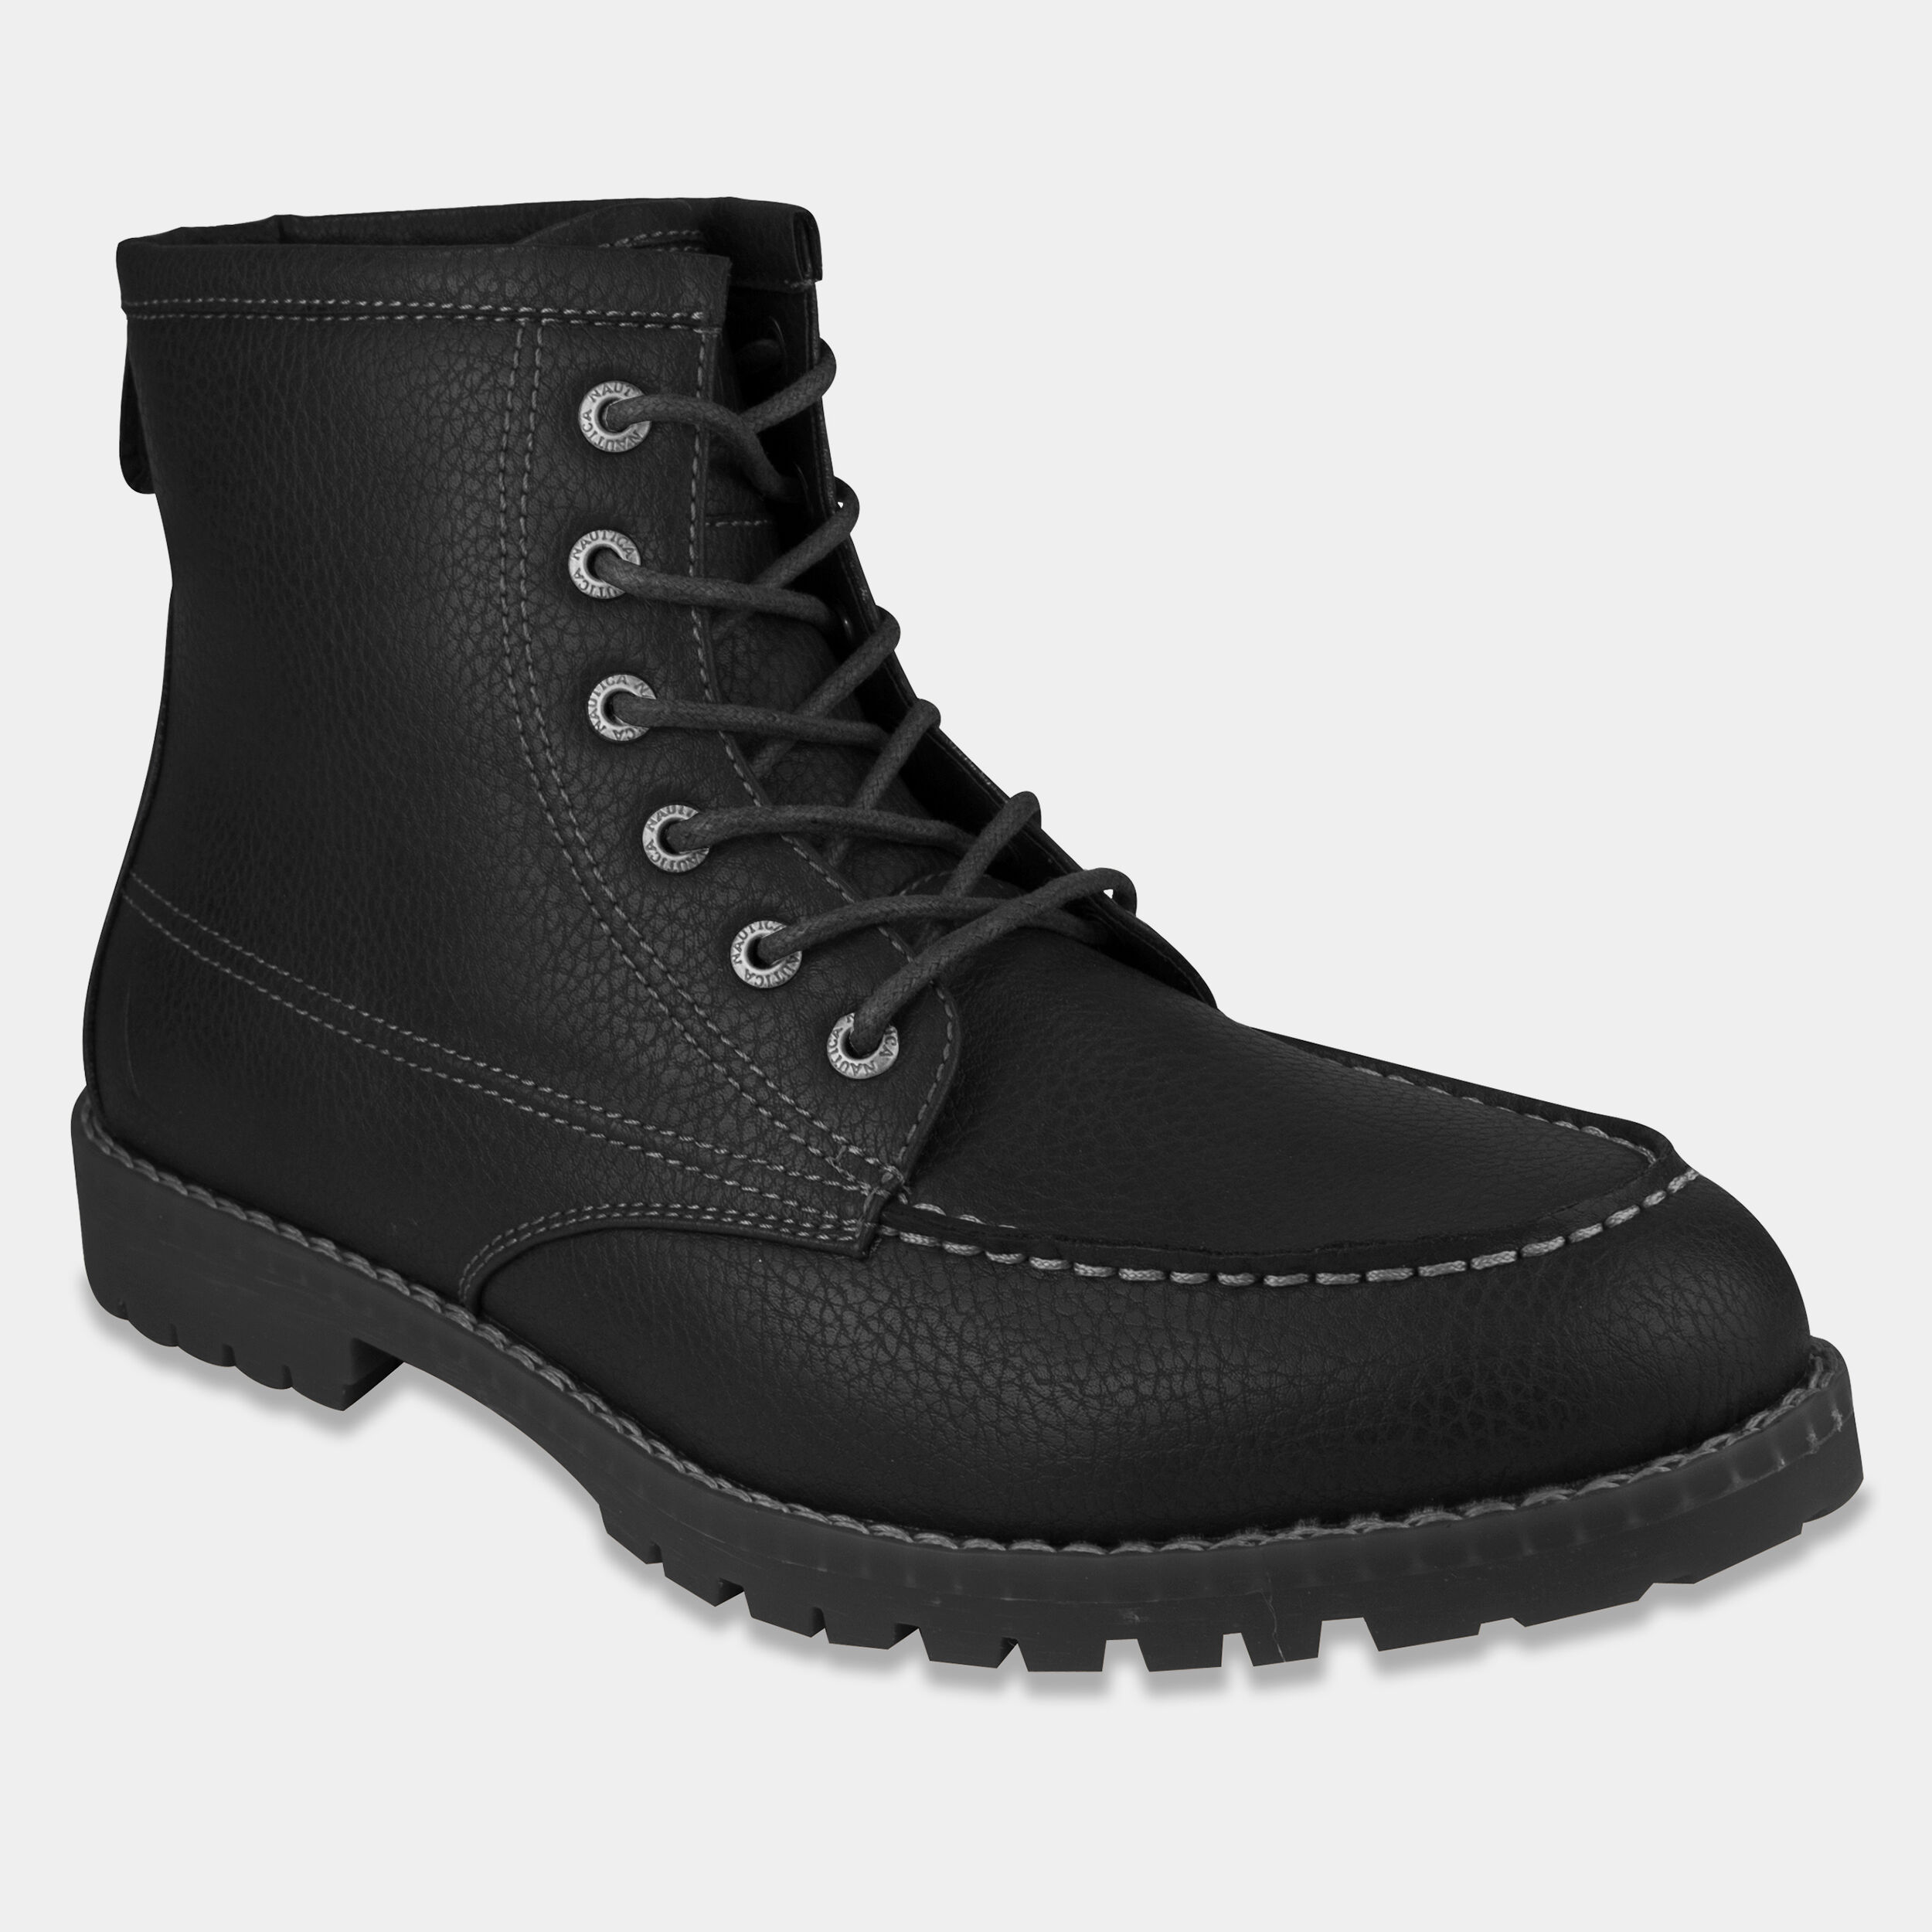 Mens Boots - Casual, Rain, and Winter